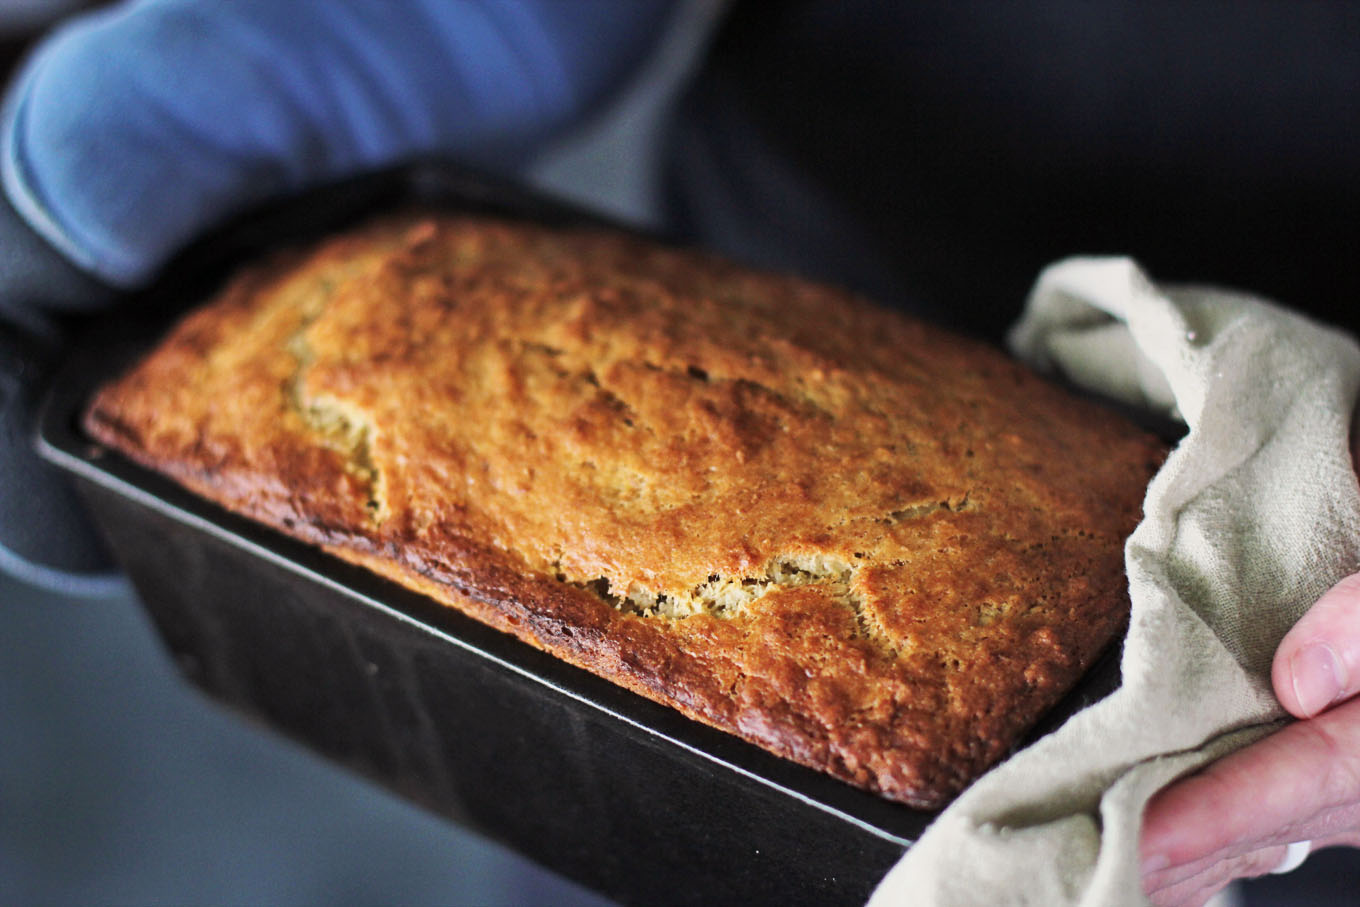 Sourdough banana Bread - The extra touch of sourdough starter turns a regular banana bread loaf into something extraordinary.